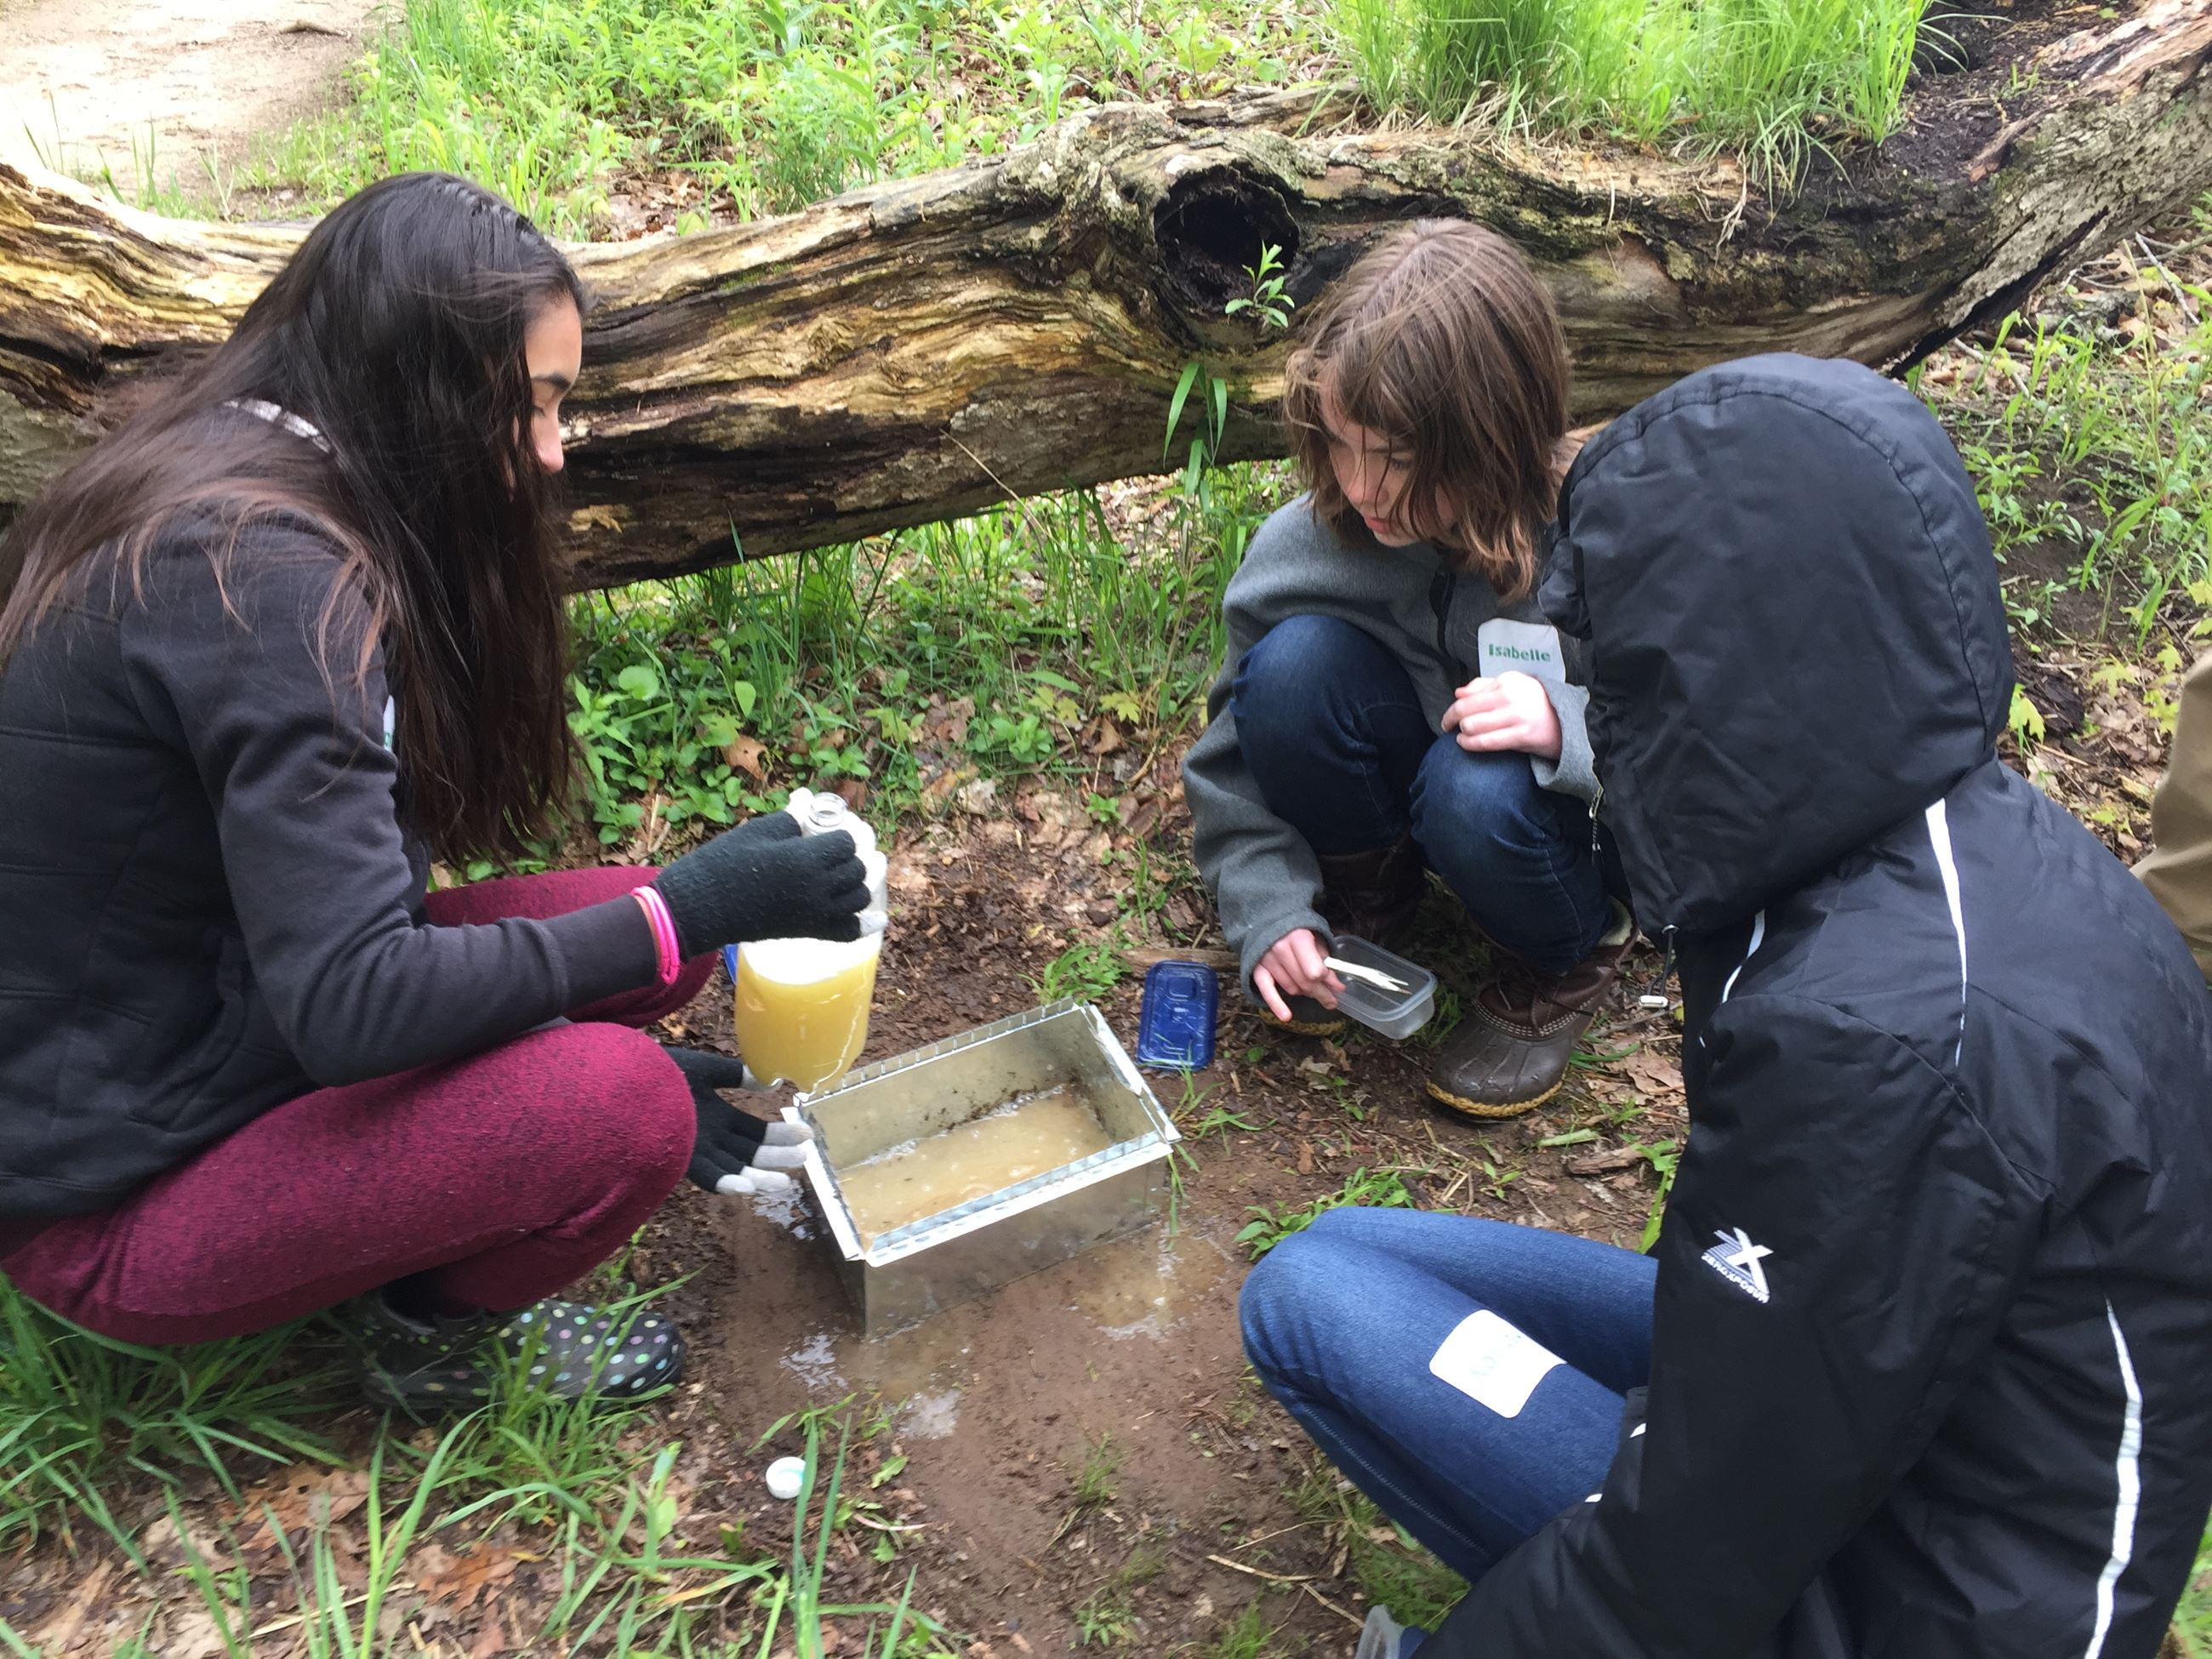 Young women explore leaf litter.